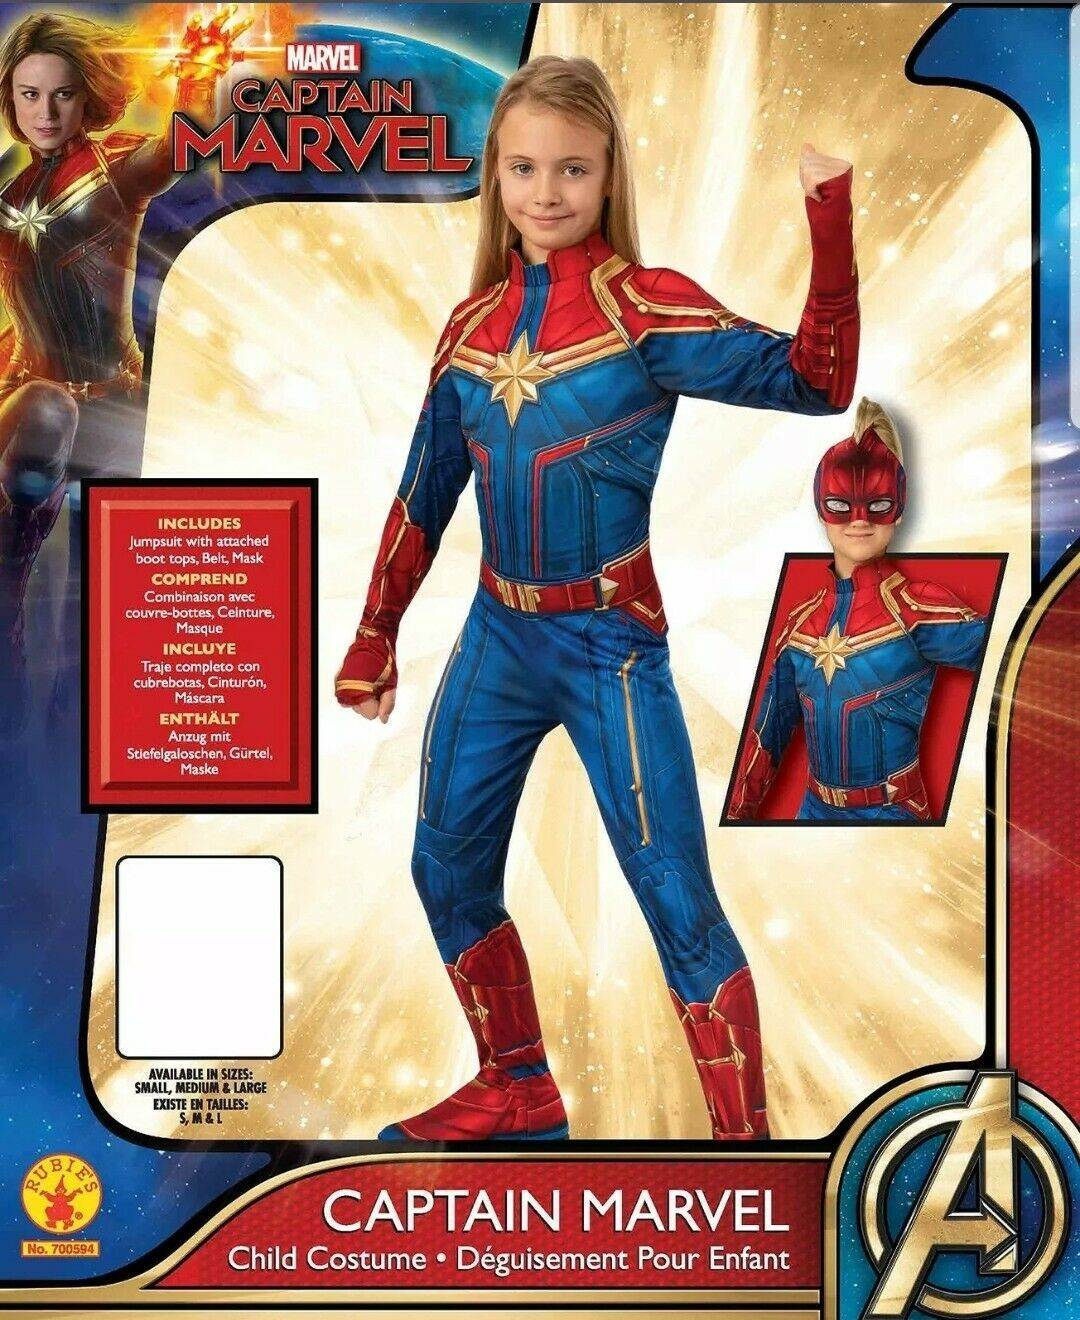 Girls Captain Marvel Hero Suit Deluxe Superhero Costume Dress Up Pretend Play Toys Games Alibaba.com offers 896 captain marvel costume products. monetariza solucoes financeiras empresariais